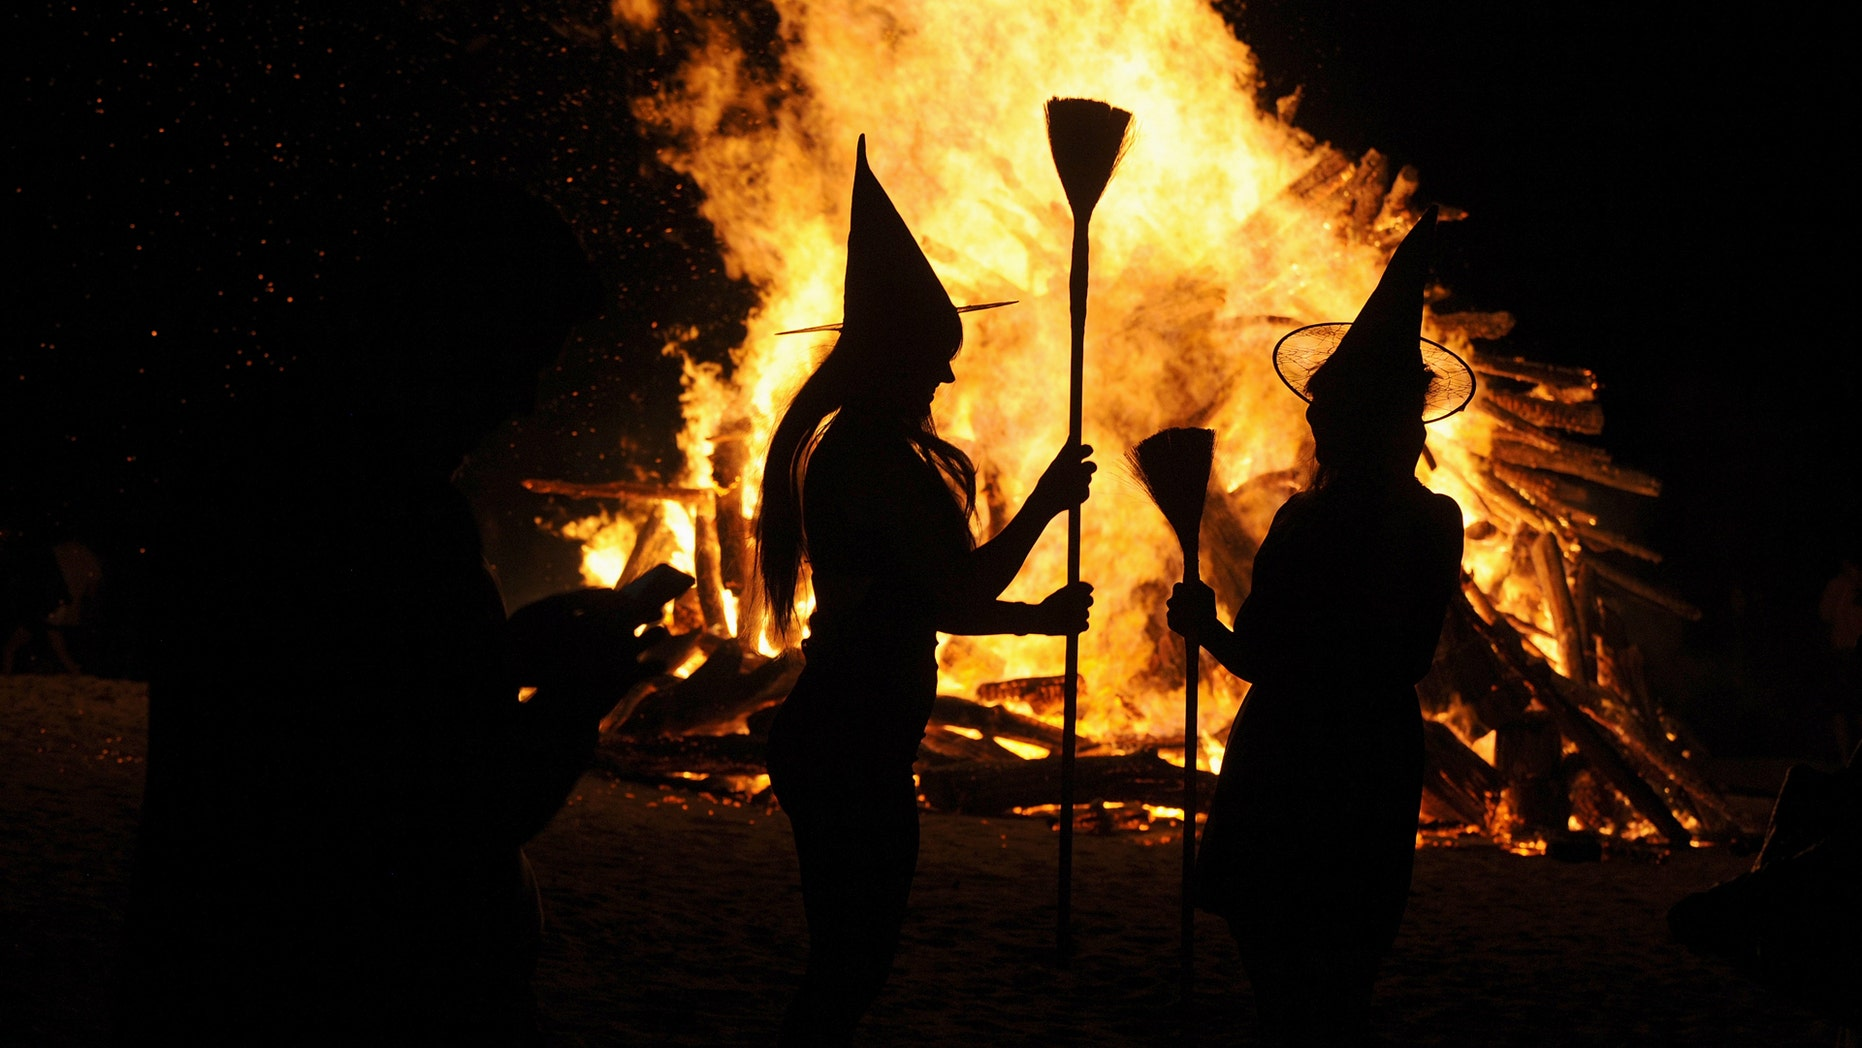 File photo: Two women dressed up as witches take pictures in front of the bonfire during the traditional San Juan's (Saint John) night on the beach in Gijon, northern Spain, June 24, 2015. (REUTERS/Eloy Alonso TPX)